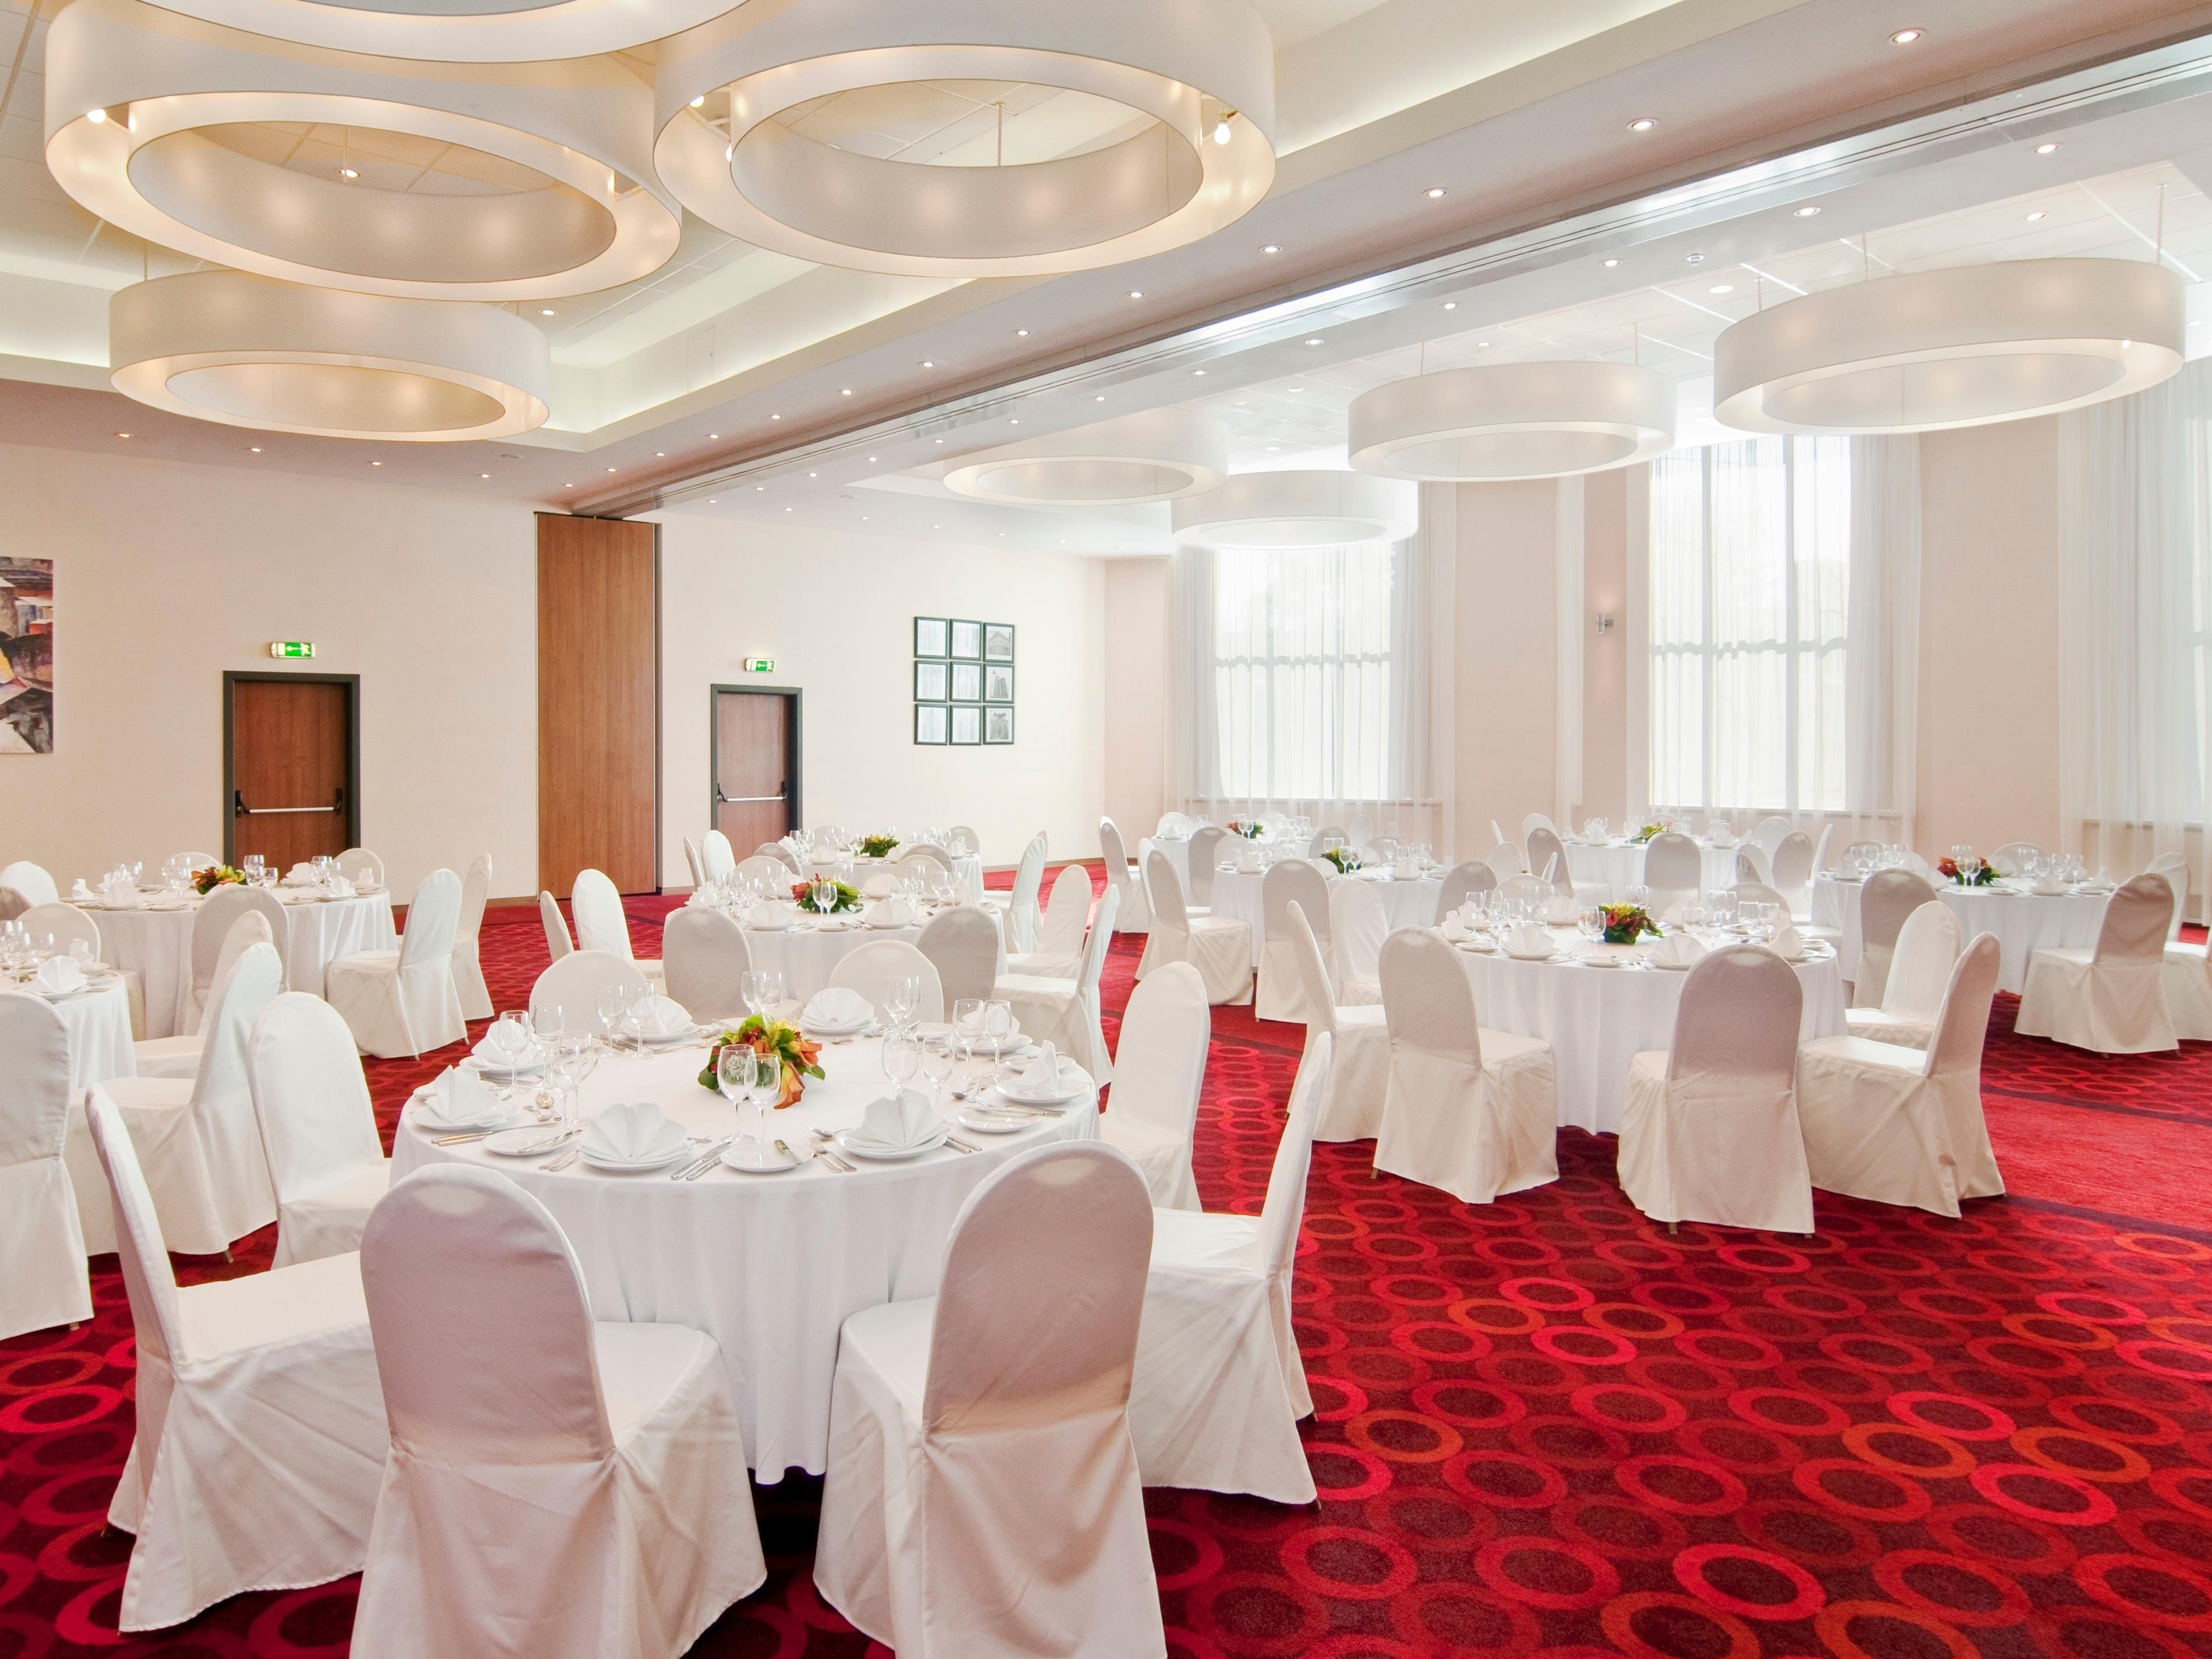 Book your wedding reception with us - Grand Ball Room.